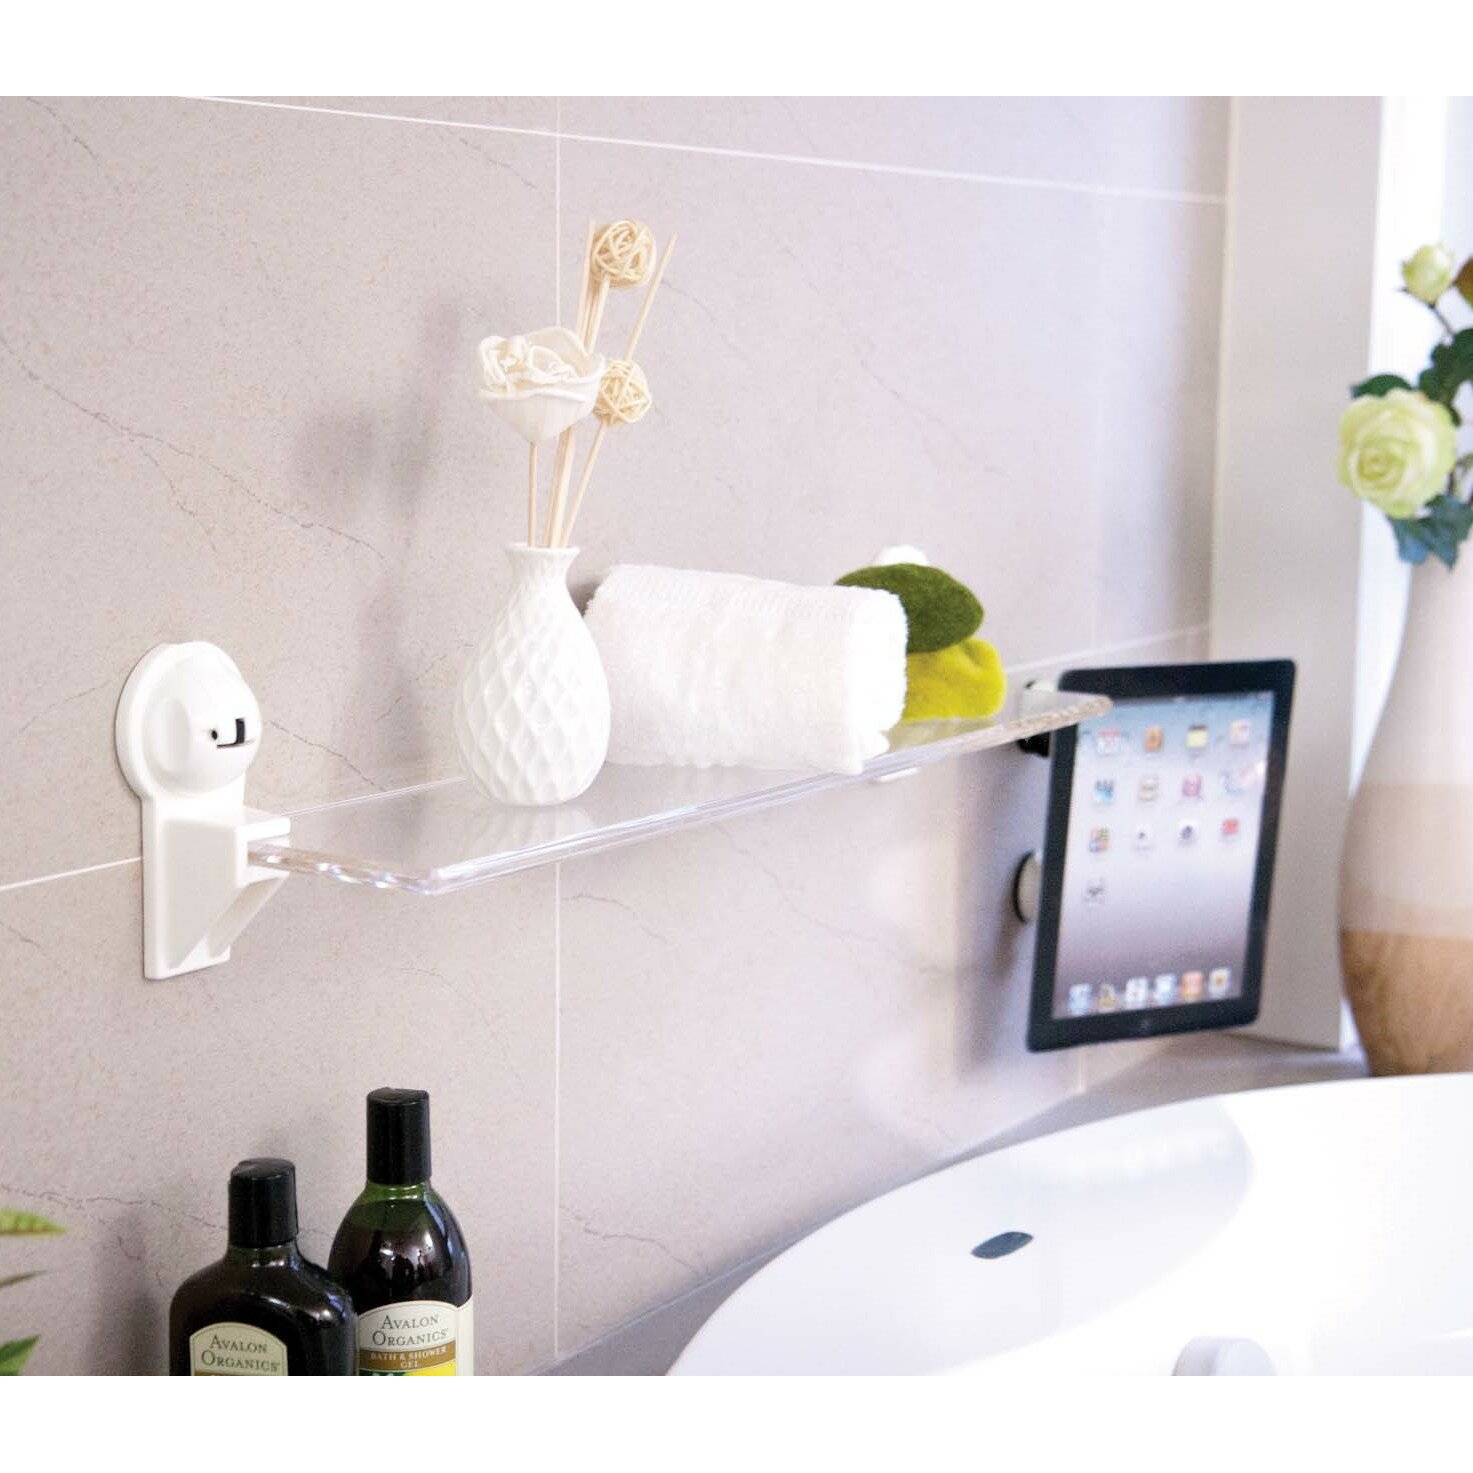 Bathroom Shelf Feca Rectangular Waterproof With Powerful Suction Cup 2575 W